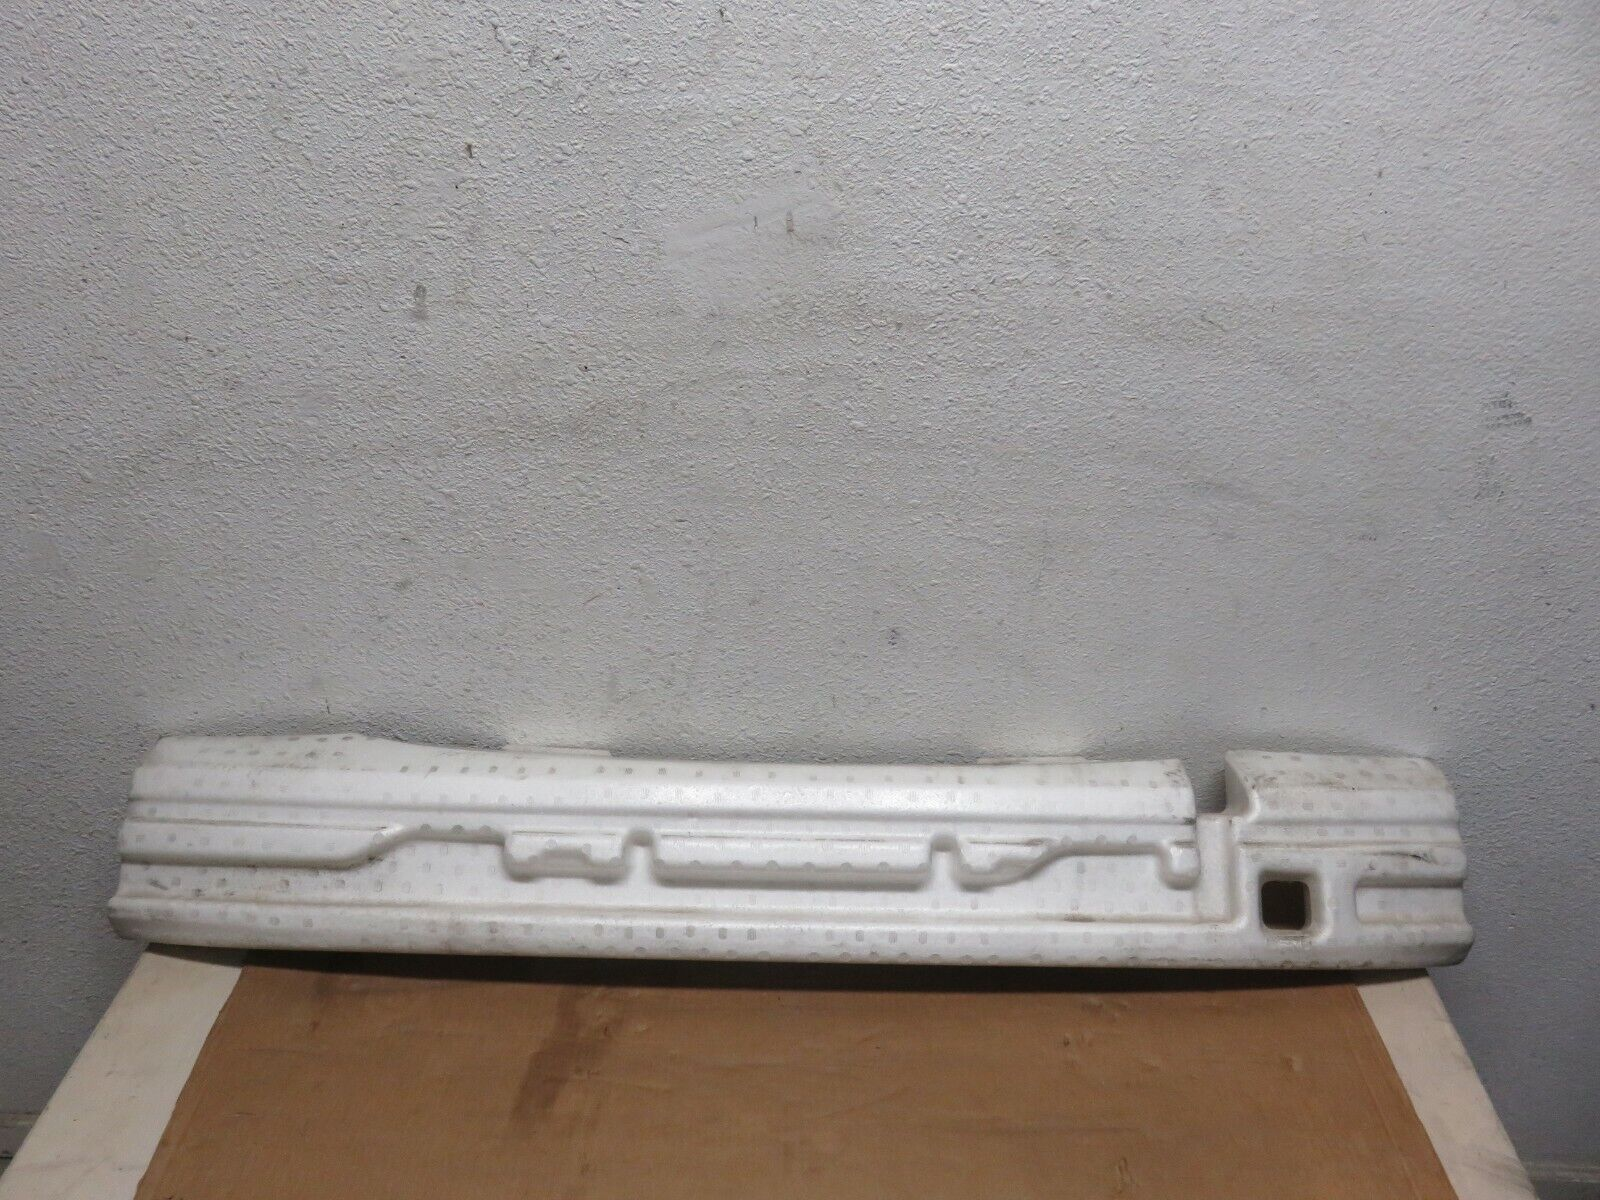 Used Lexus LS430 Bumpers for Sale